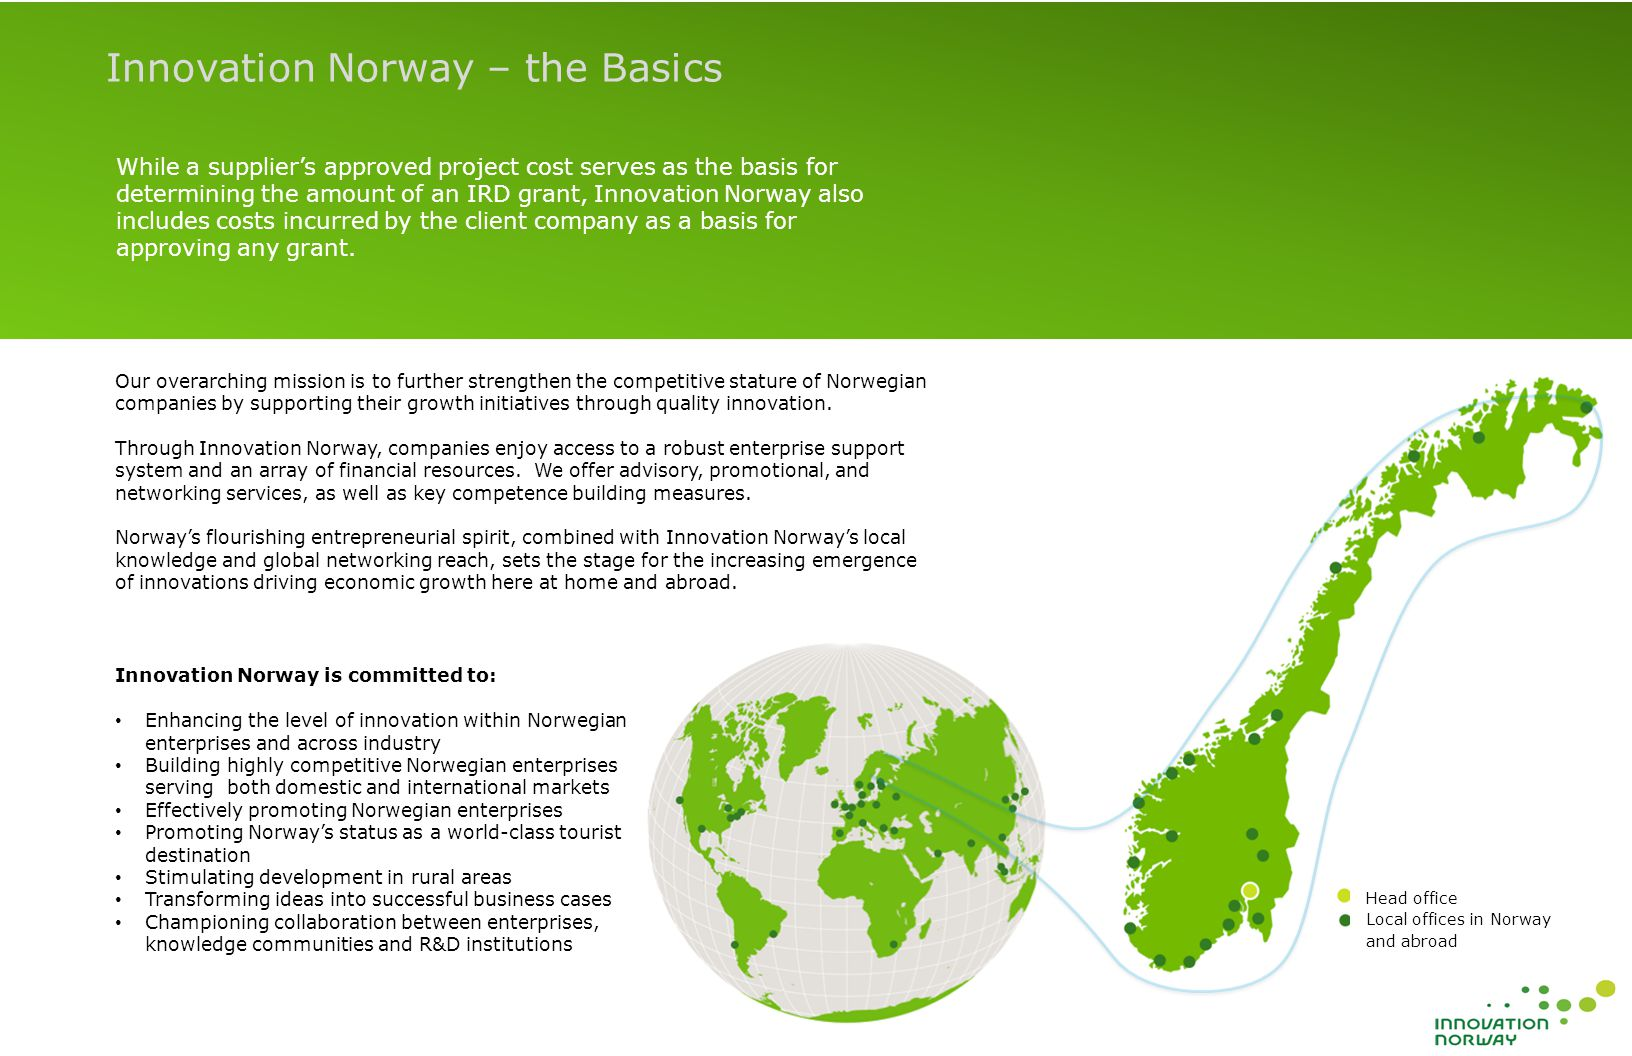 The supplier company submits the project application to Innovation Norway, receives the grant and is the primary contact for Innovation Norway.